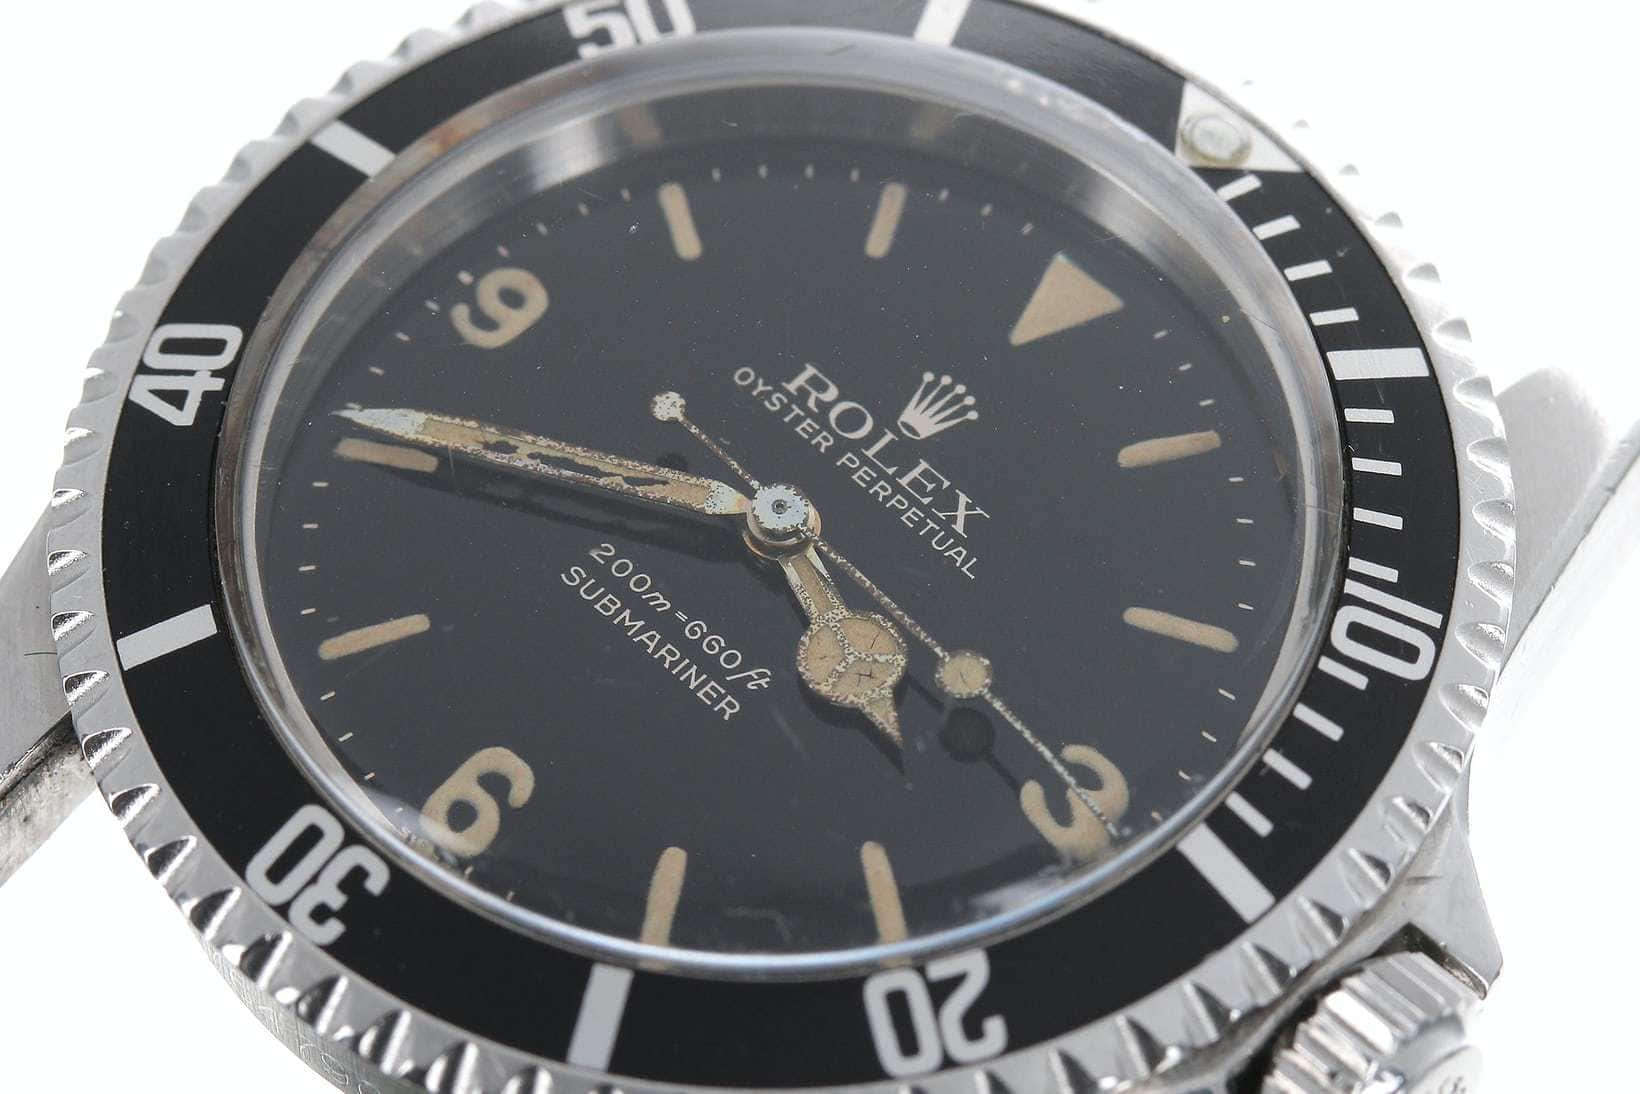 Auction Report: Single-Owner Rolex Submariner 'Explorer Dial' 5512 Sells For Over $250,000